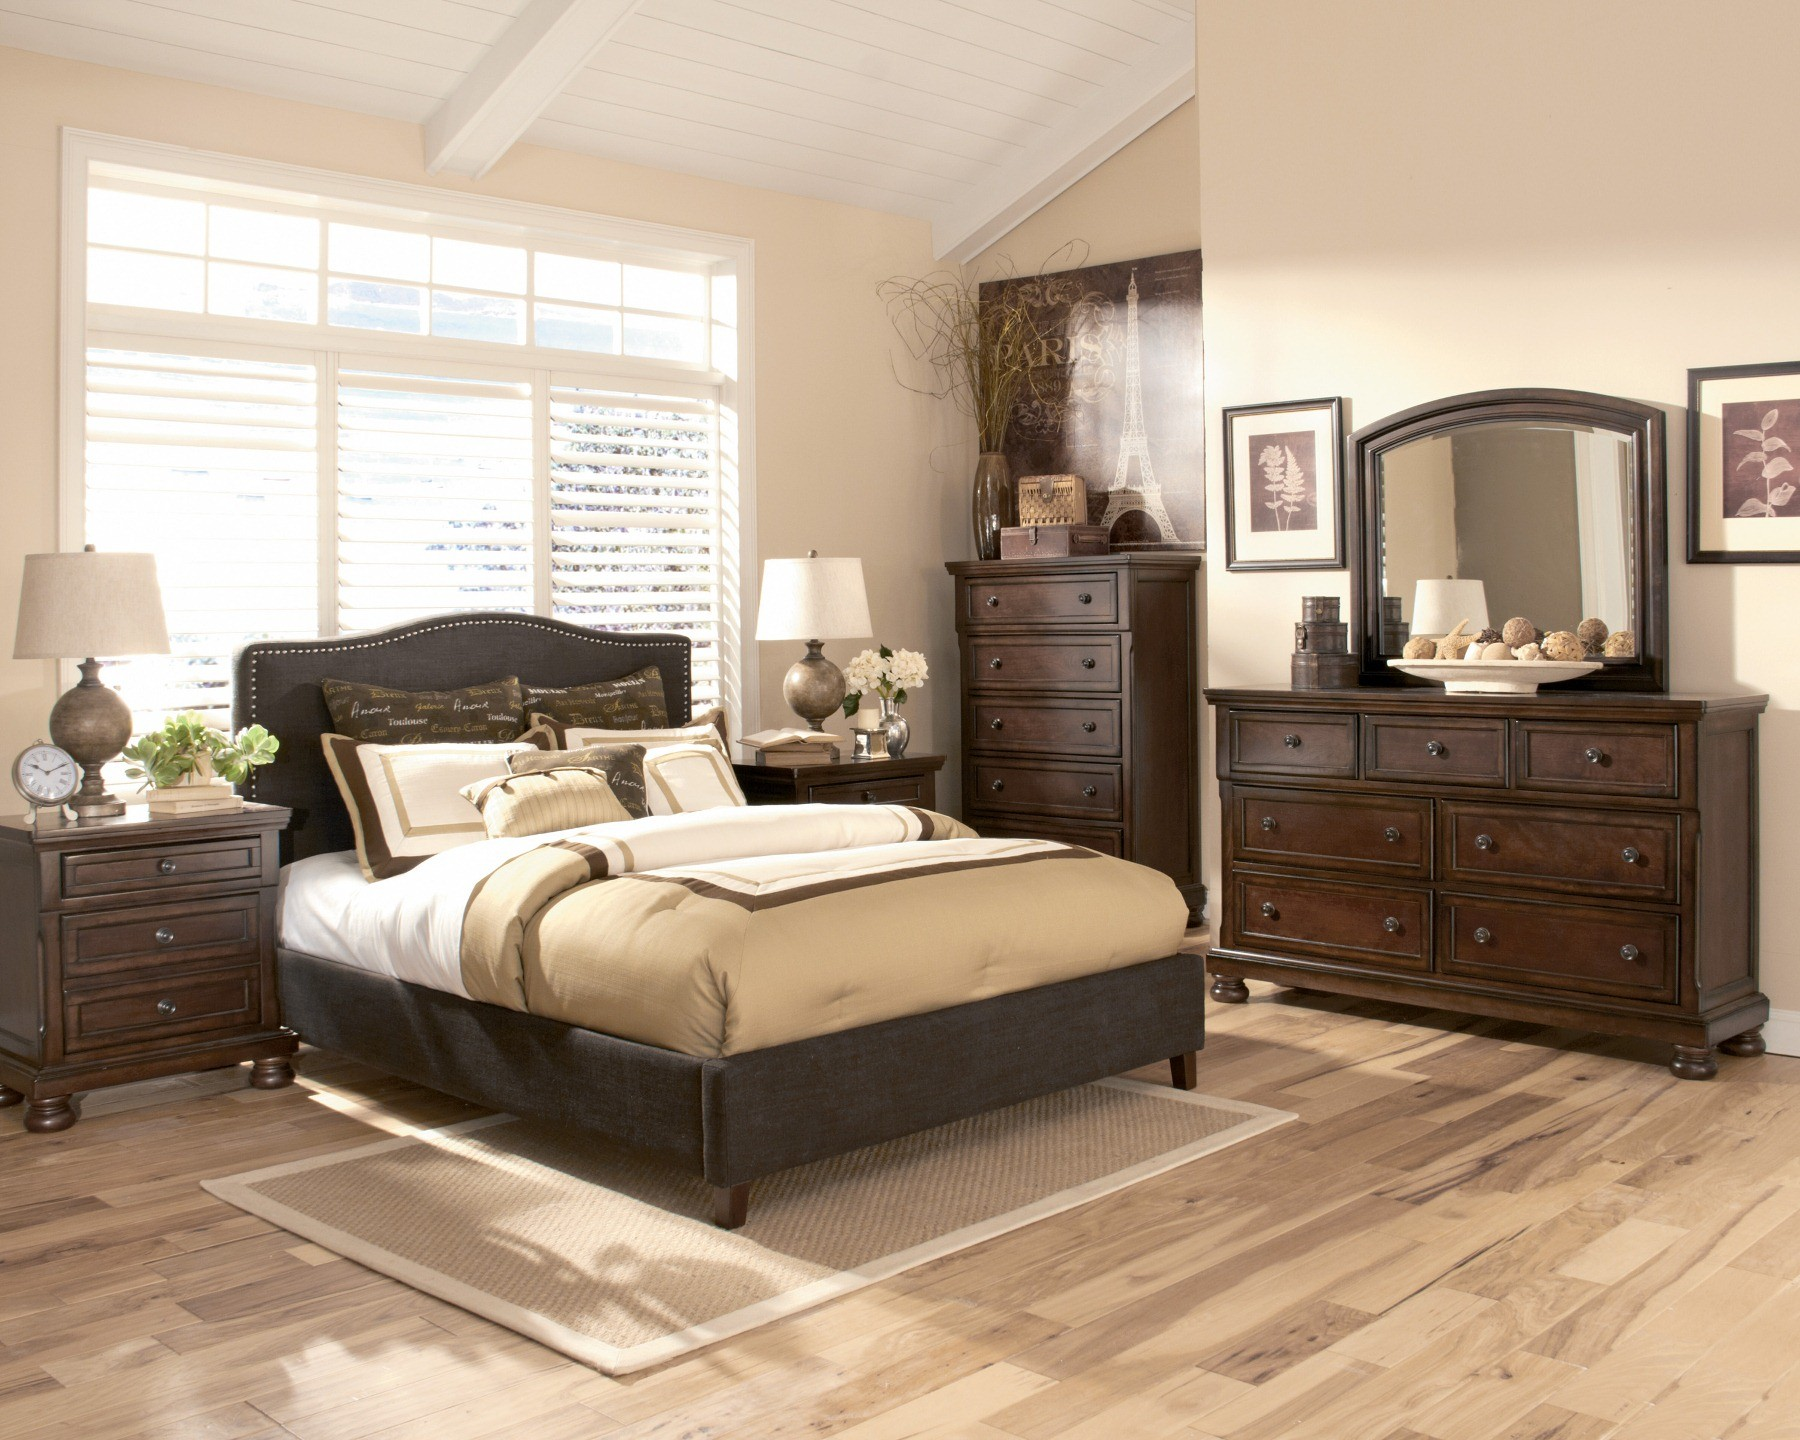 Portland Queen Upholstered Bed From Ashley B600 357 354 Coleman Furniture